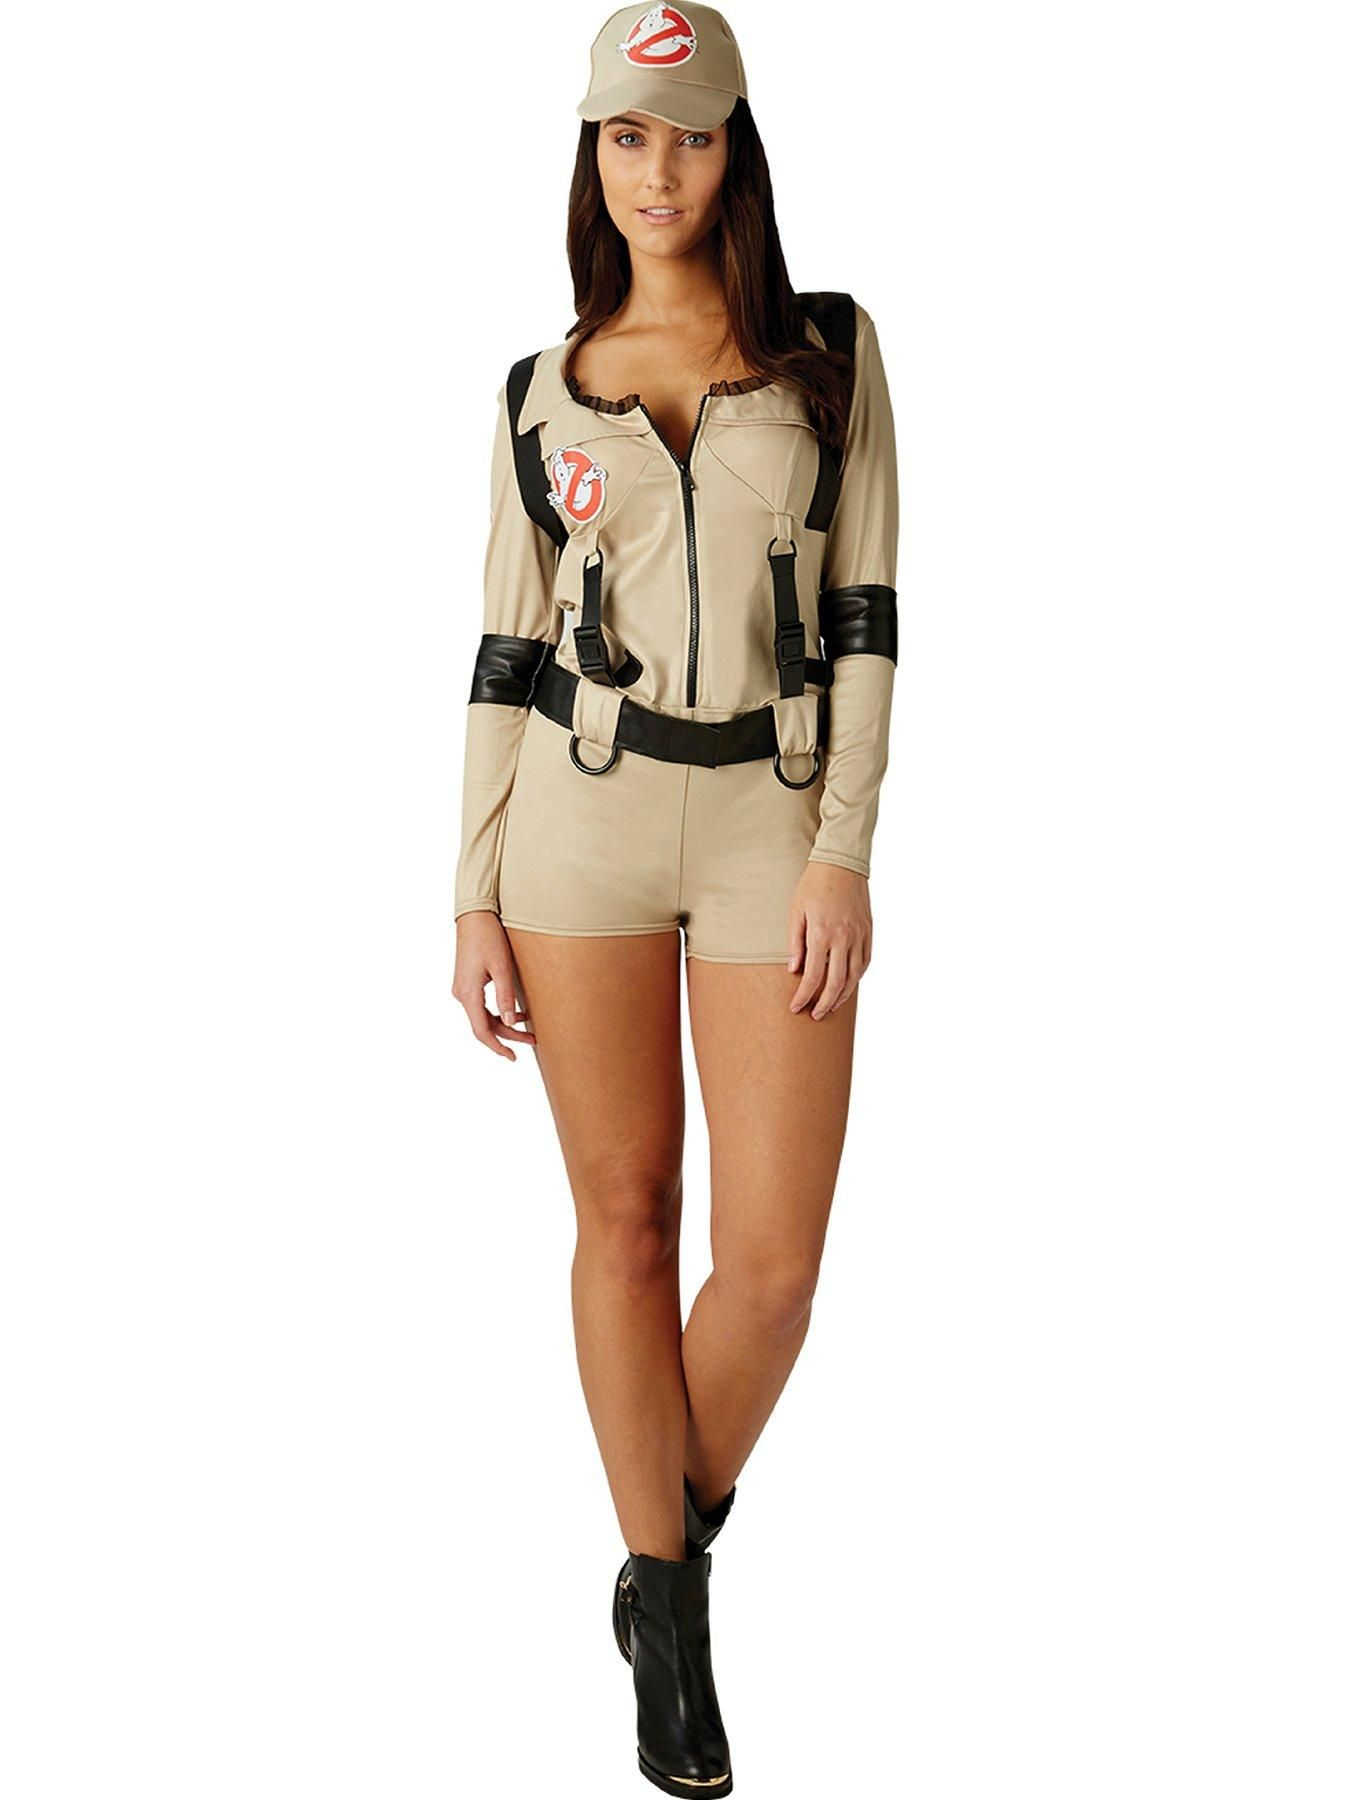 Prove that exorcising ghouls isn't just a job for men, and join the new all-woman Ghostbusters team! This all-in-one body suit features long sleeves, shorts, zip up style front, and has the Ghostbusters logo to the chest. It also includes a matching cap, and backpack. Available in sizes 4-6, 8-10, 12-14, and 16-18.